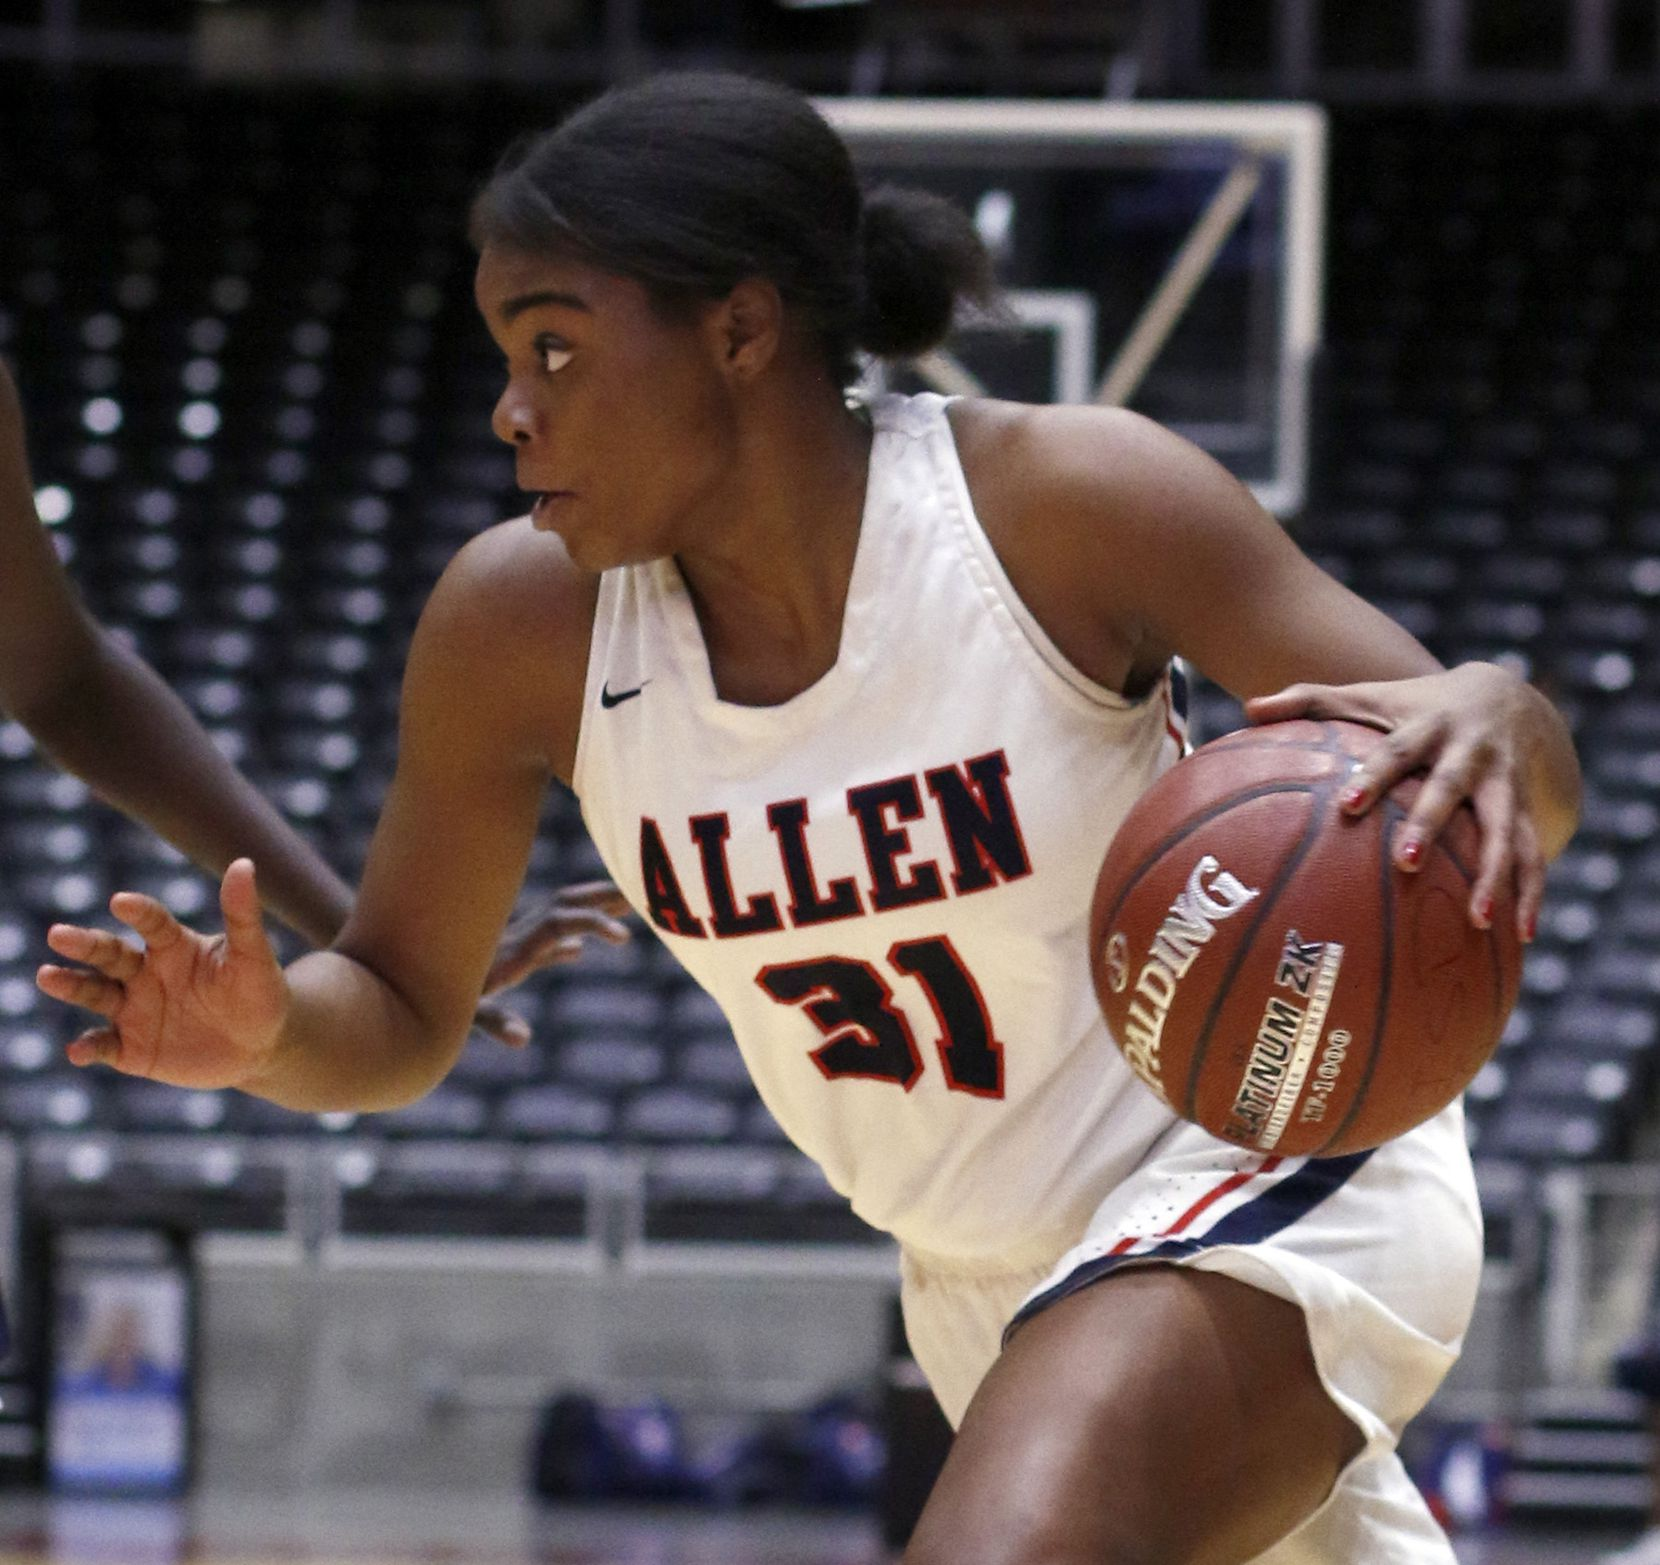 Allen guard Nyah Green (31) drives to the basket during second half action against Sachse. The two teams played in the Class 6A Region ll quarterfinal girls playoff basketball game at the Curtis Culwell Center in Garland on February 19, 2019. (Steve Hamm/ Special Contributor)